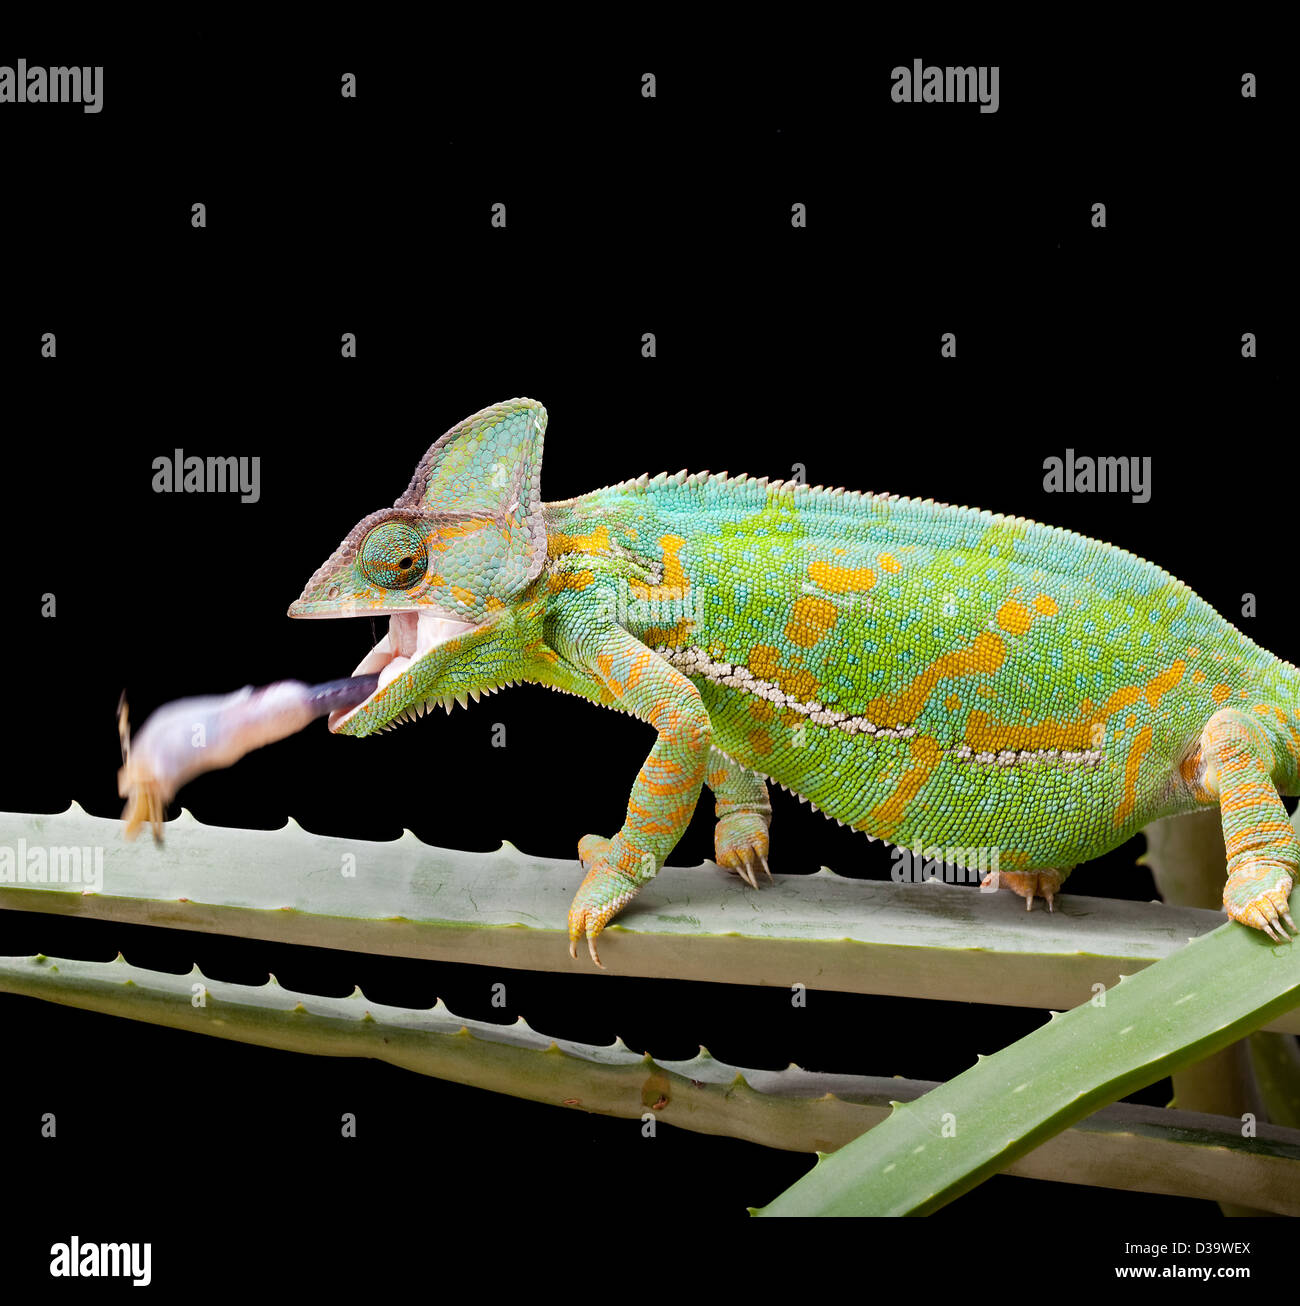 Yemen or Veiled Chameleon catching a grasshopper in a split second - Stock Image